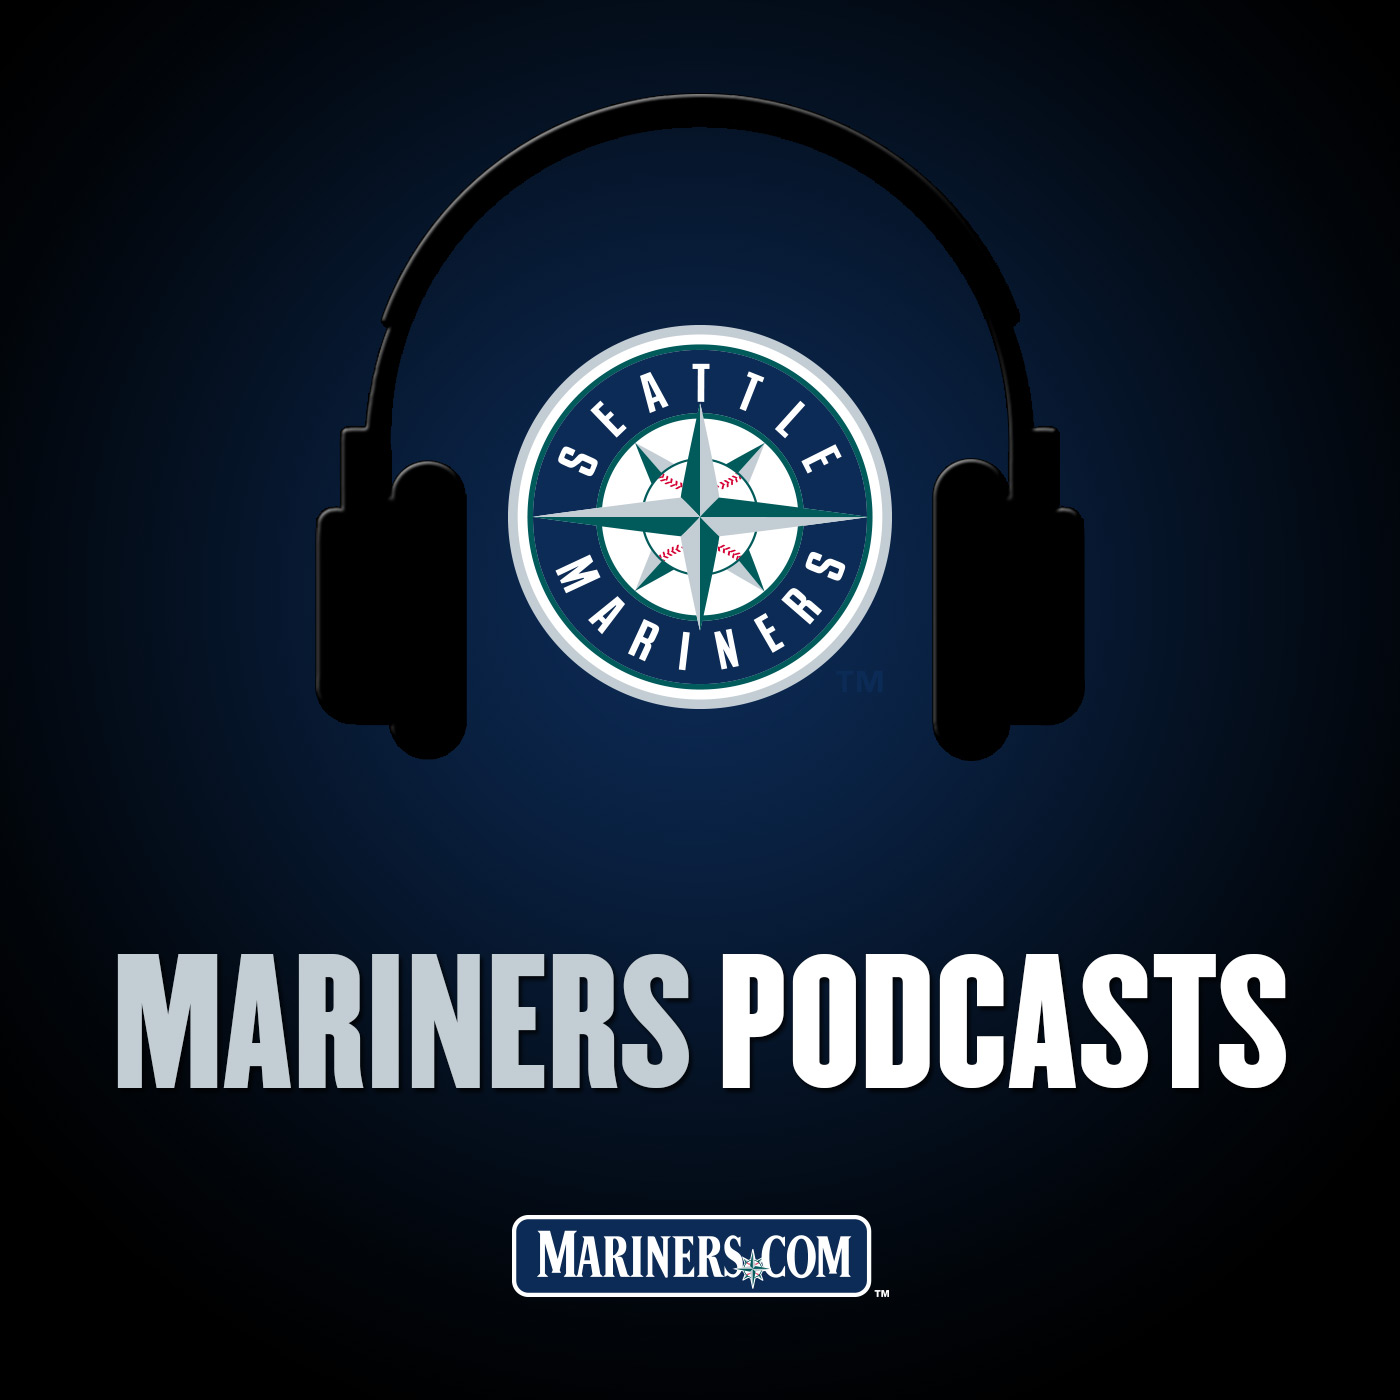 <![CDATA[Seattle Mariners Podcast]]>